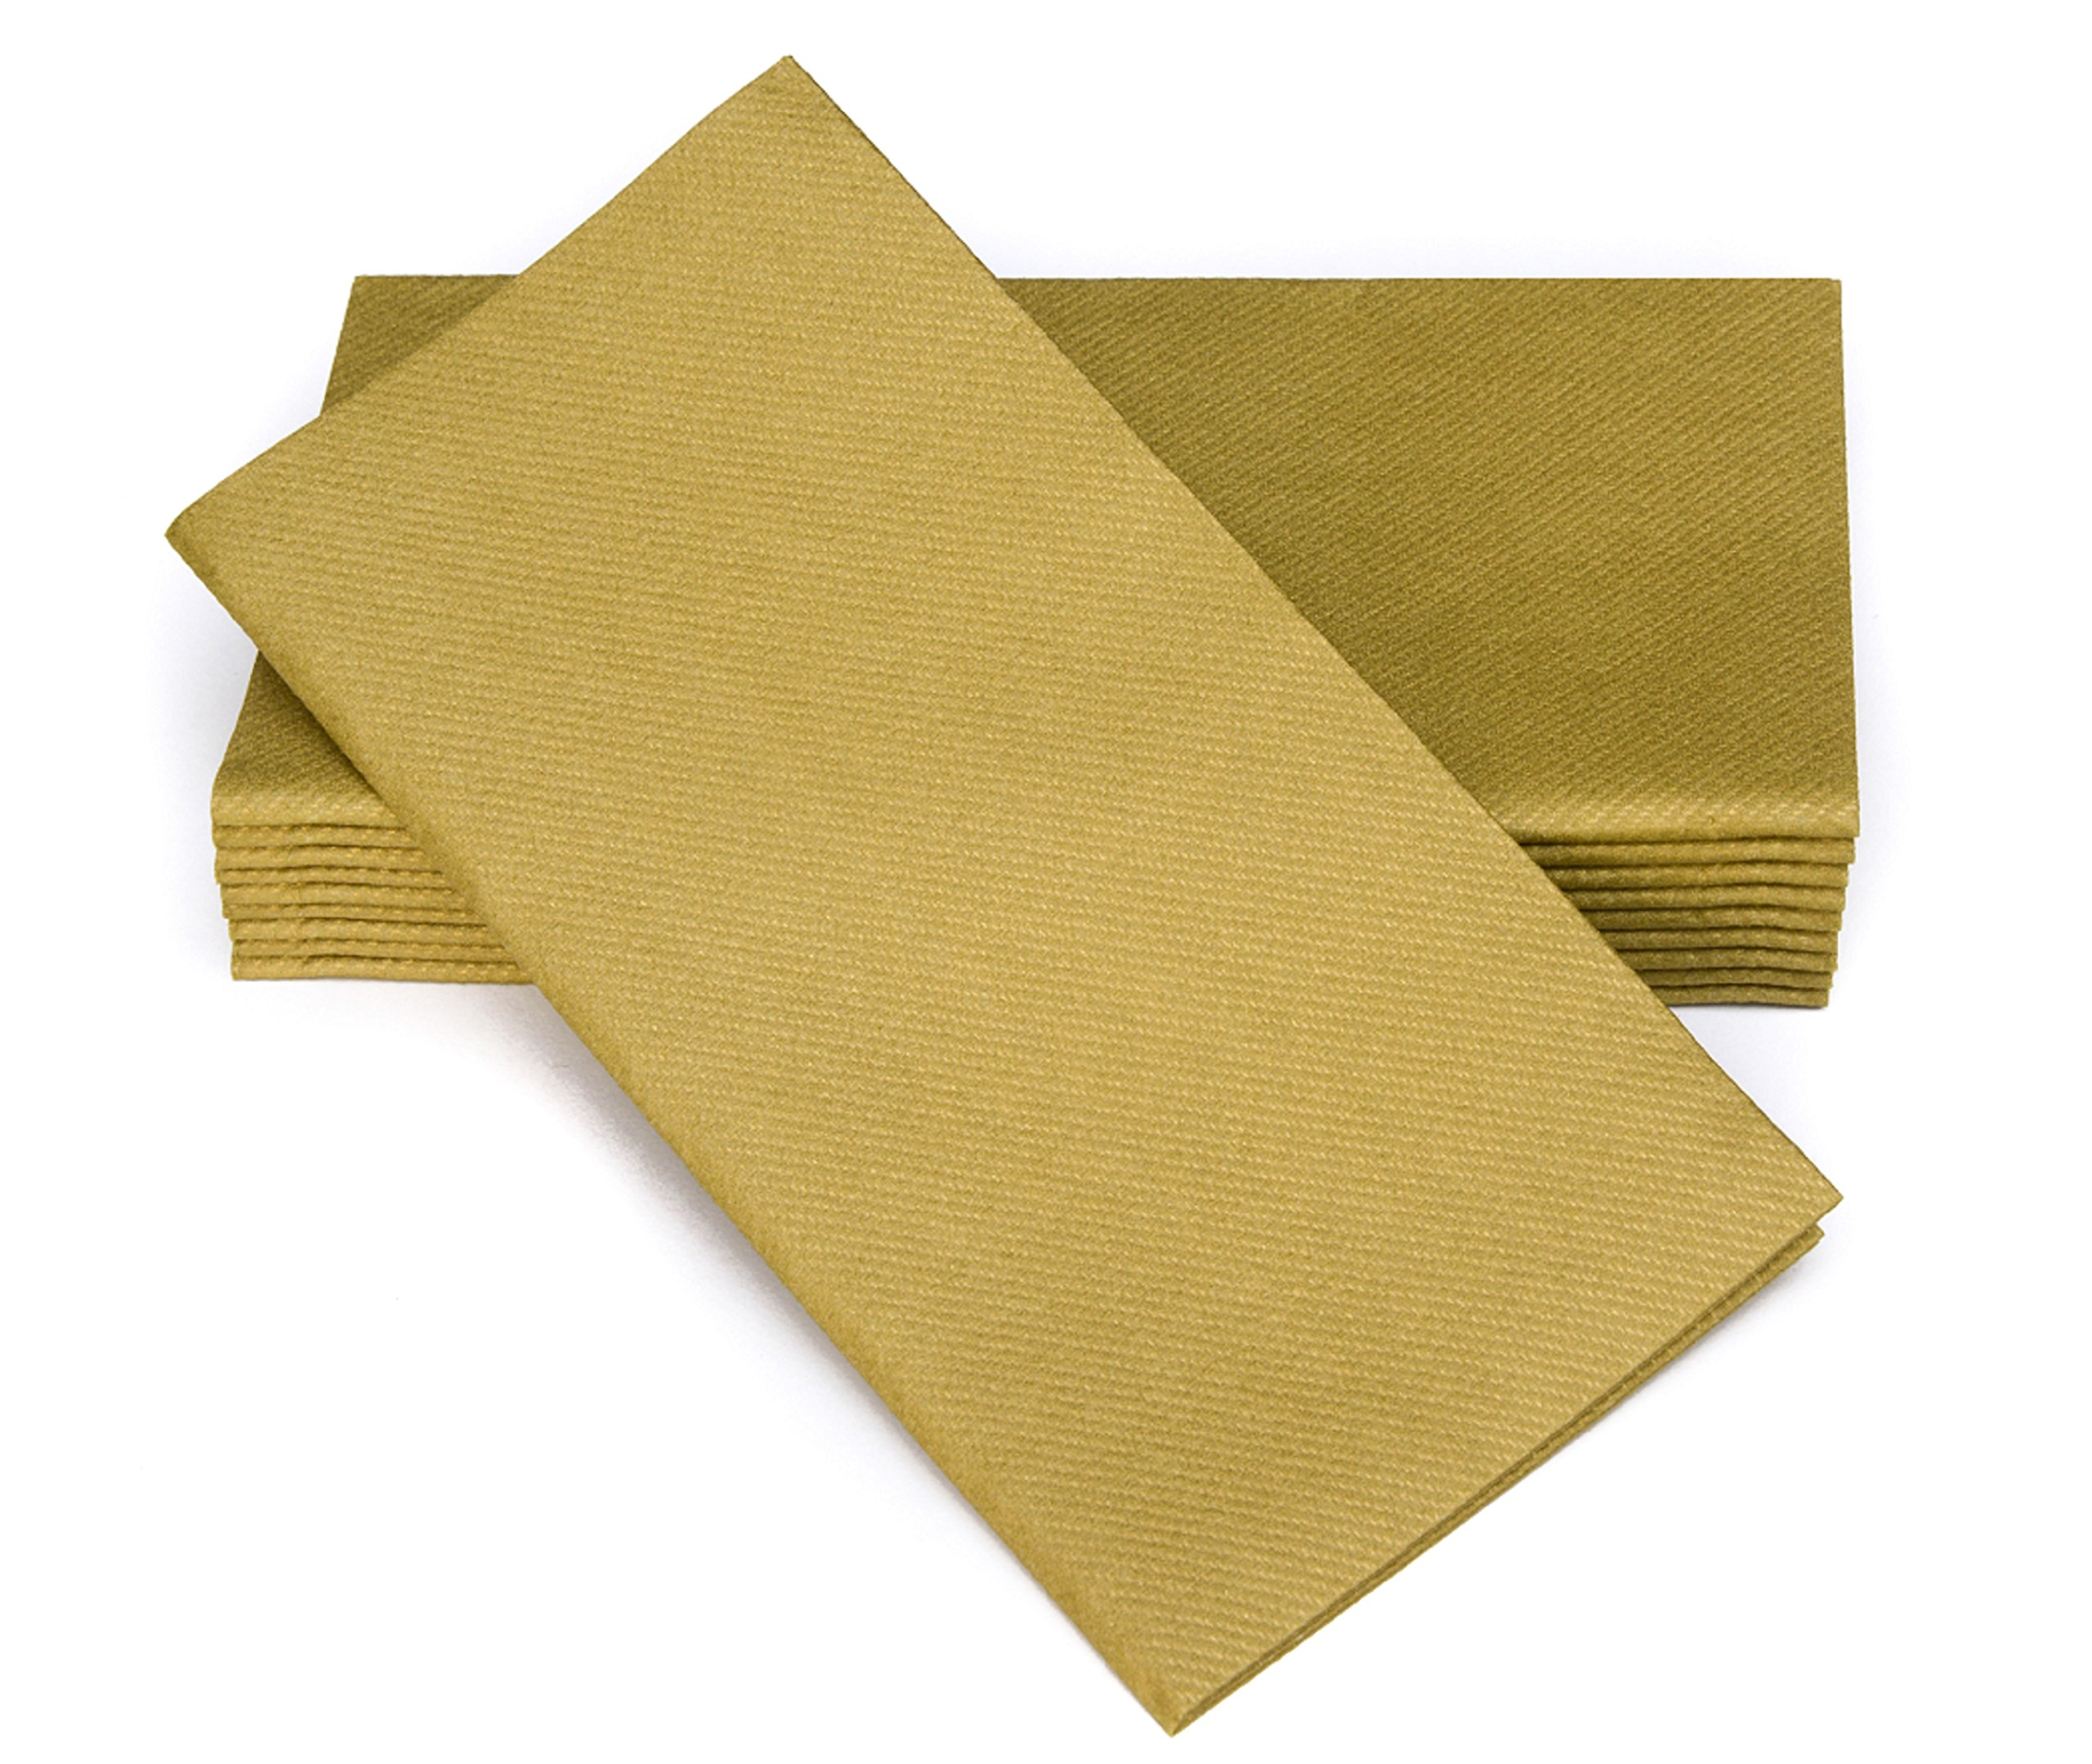 "Simulinen Dinner Napkins – Disposable, GOLD, Cloth-Like – Elegant, yet Heavy Duty Soft, Absorbent & Durable – 16""x16"" – Box of 50"